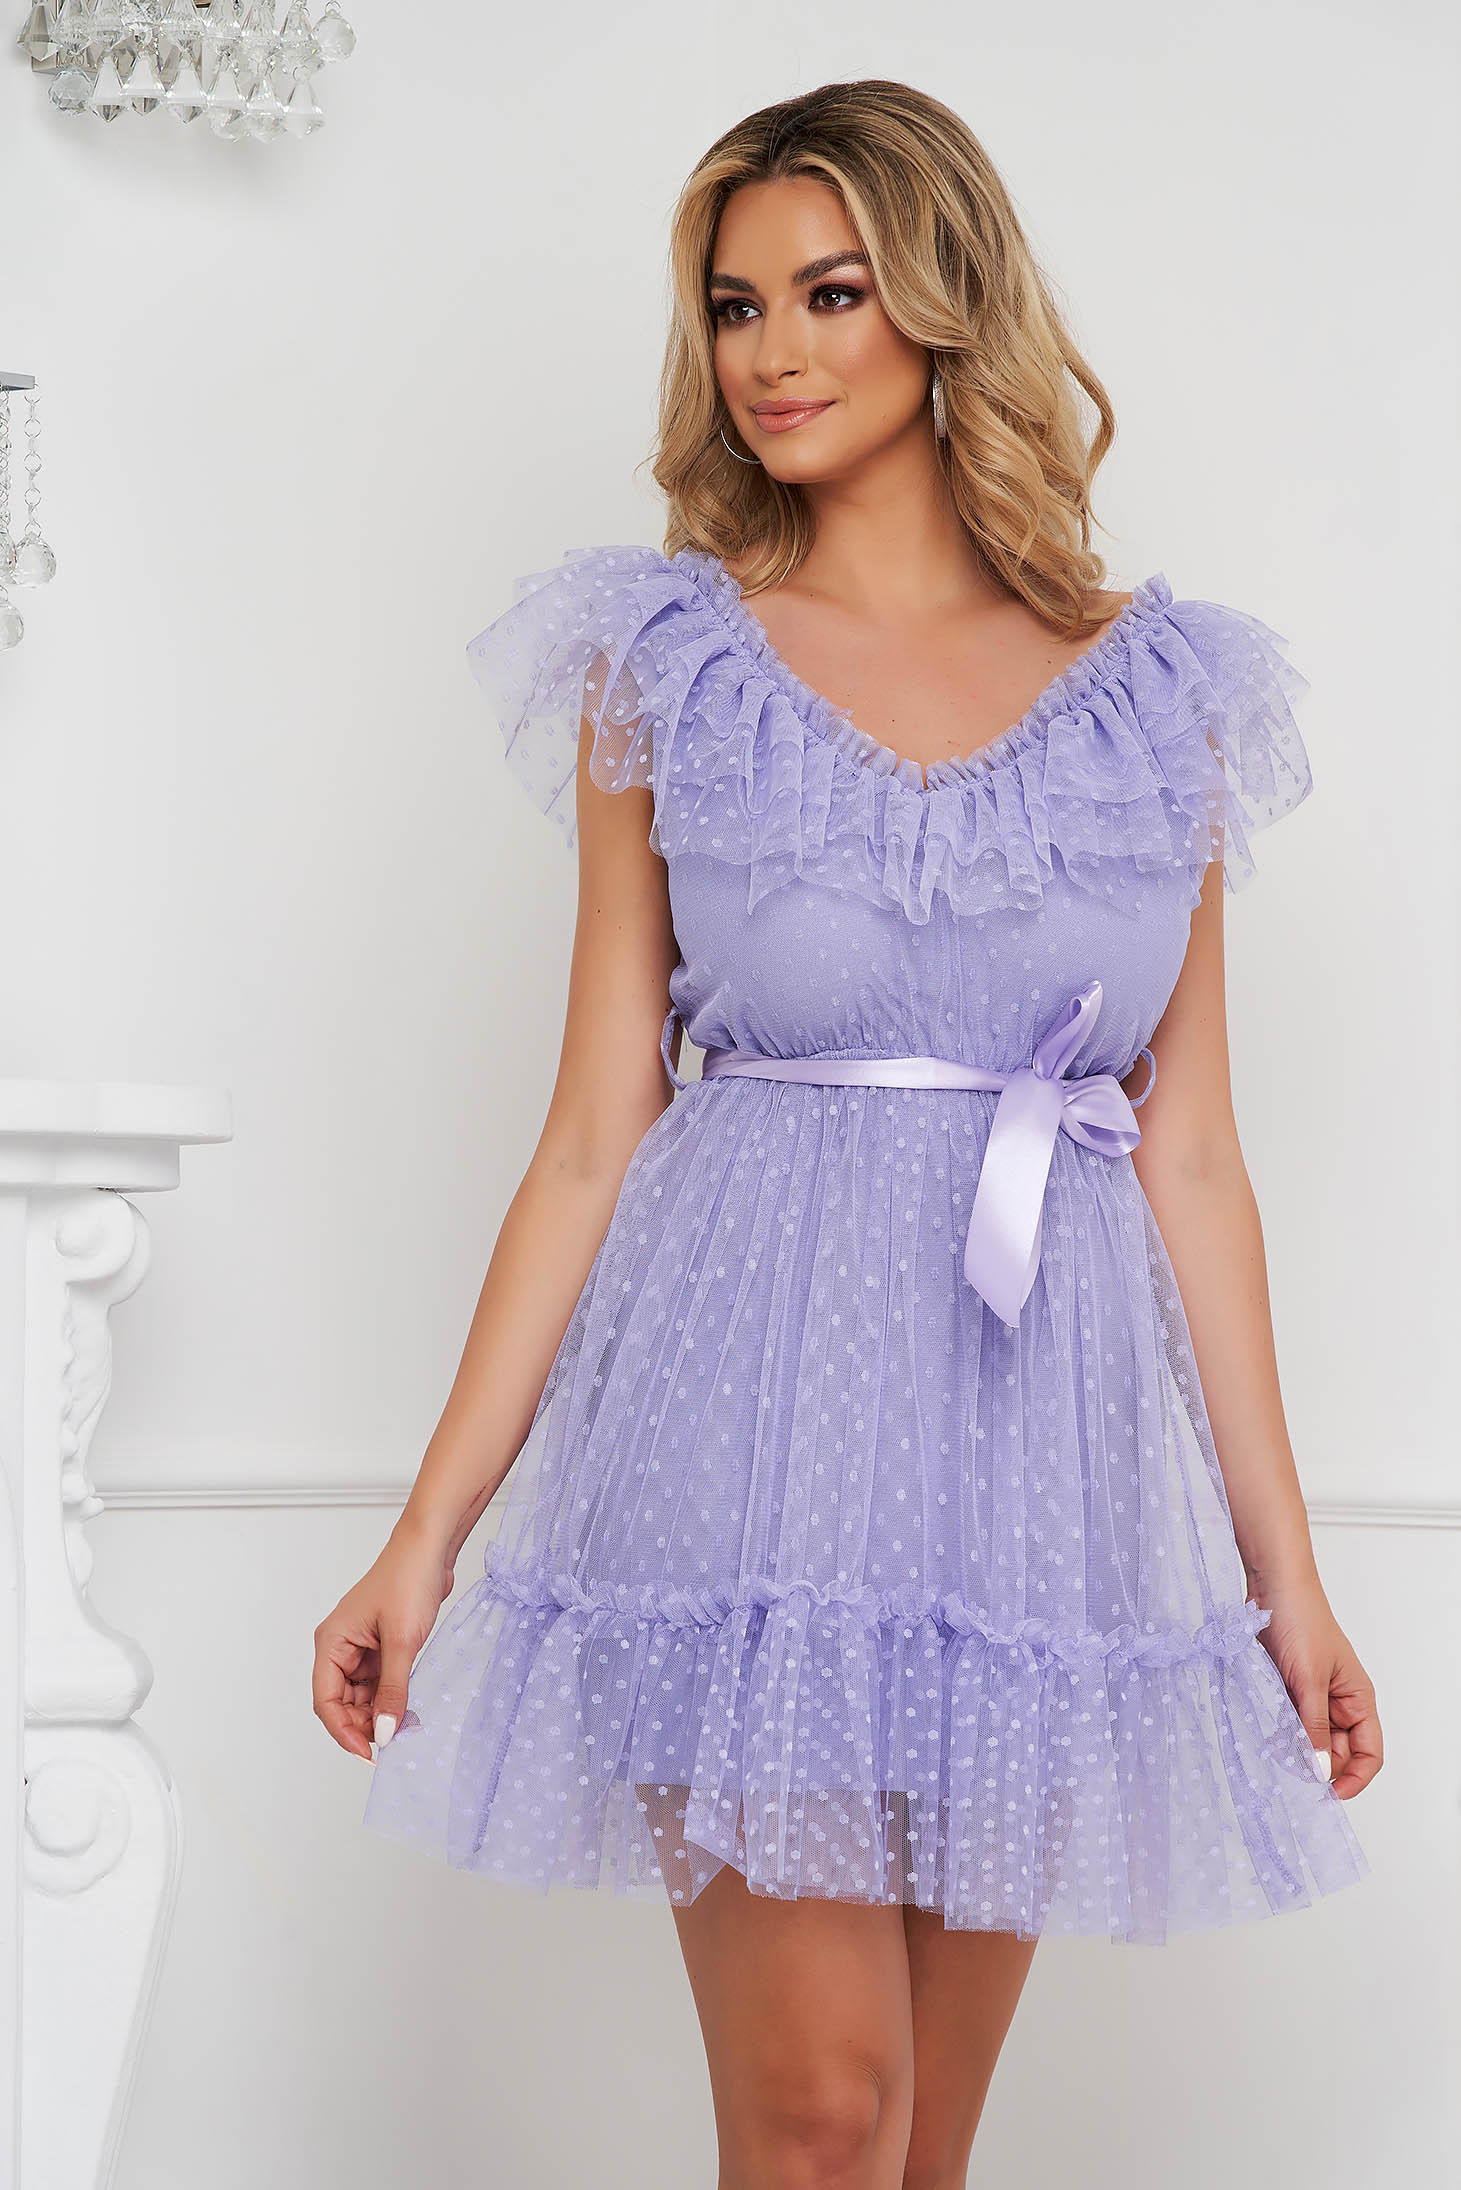 Lila dress from tulle cloche with elastic waist plumeti on the shoulders accessorized with tied waistband occasional